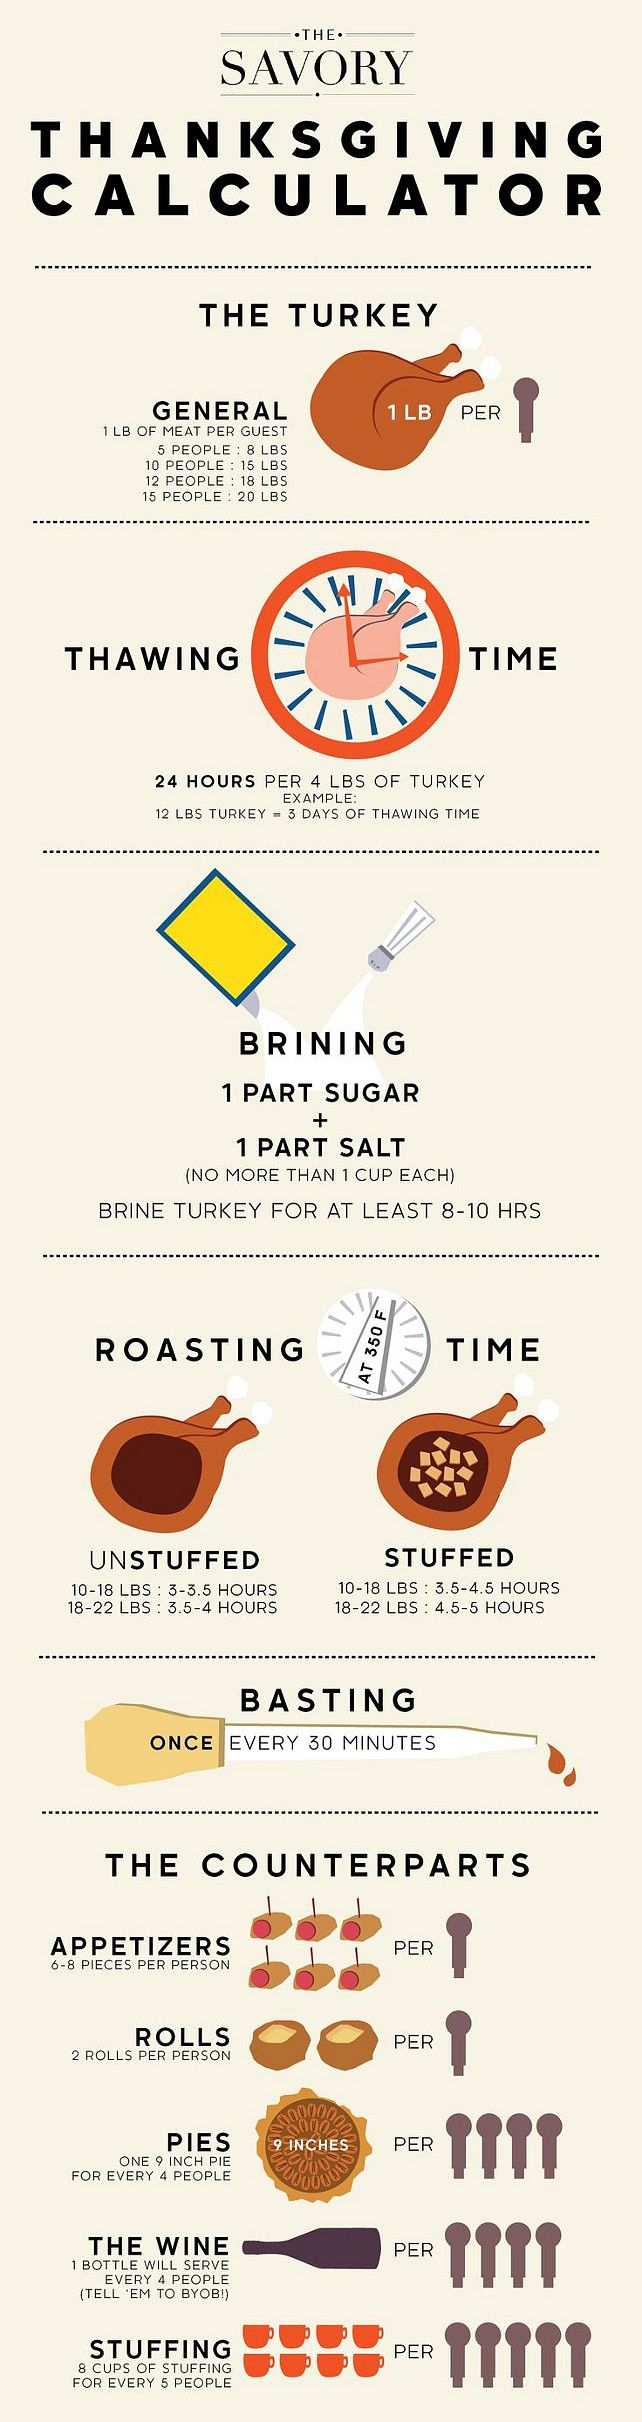 Thanksgiving Calculator. Caculate how much food to make for Thanksgiving.